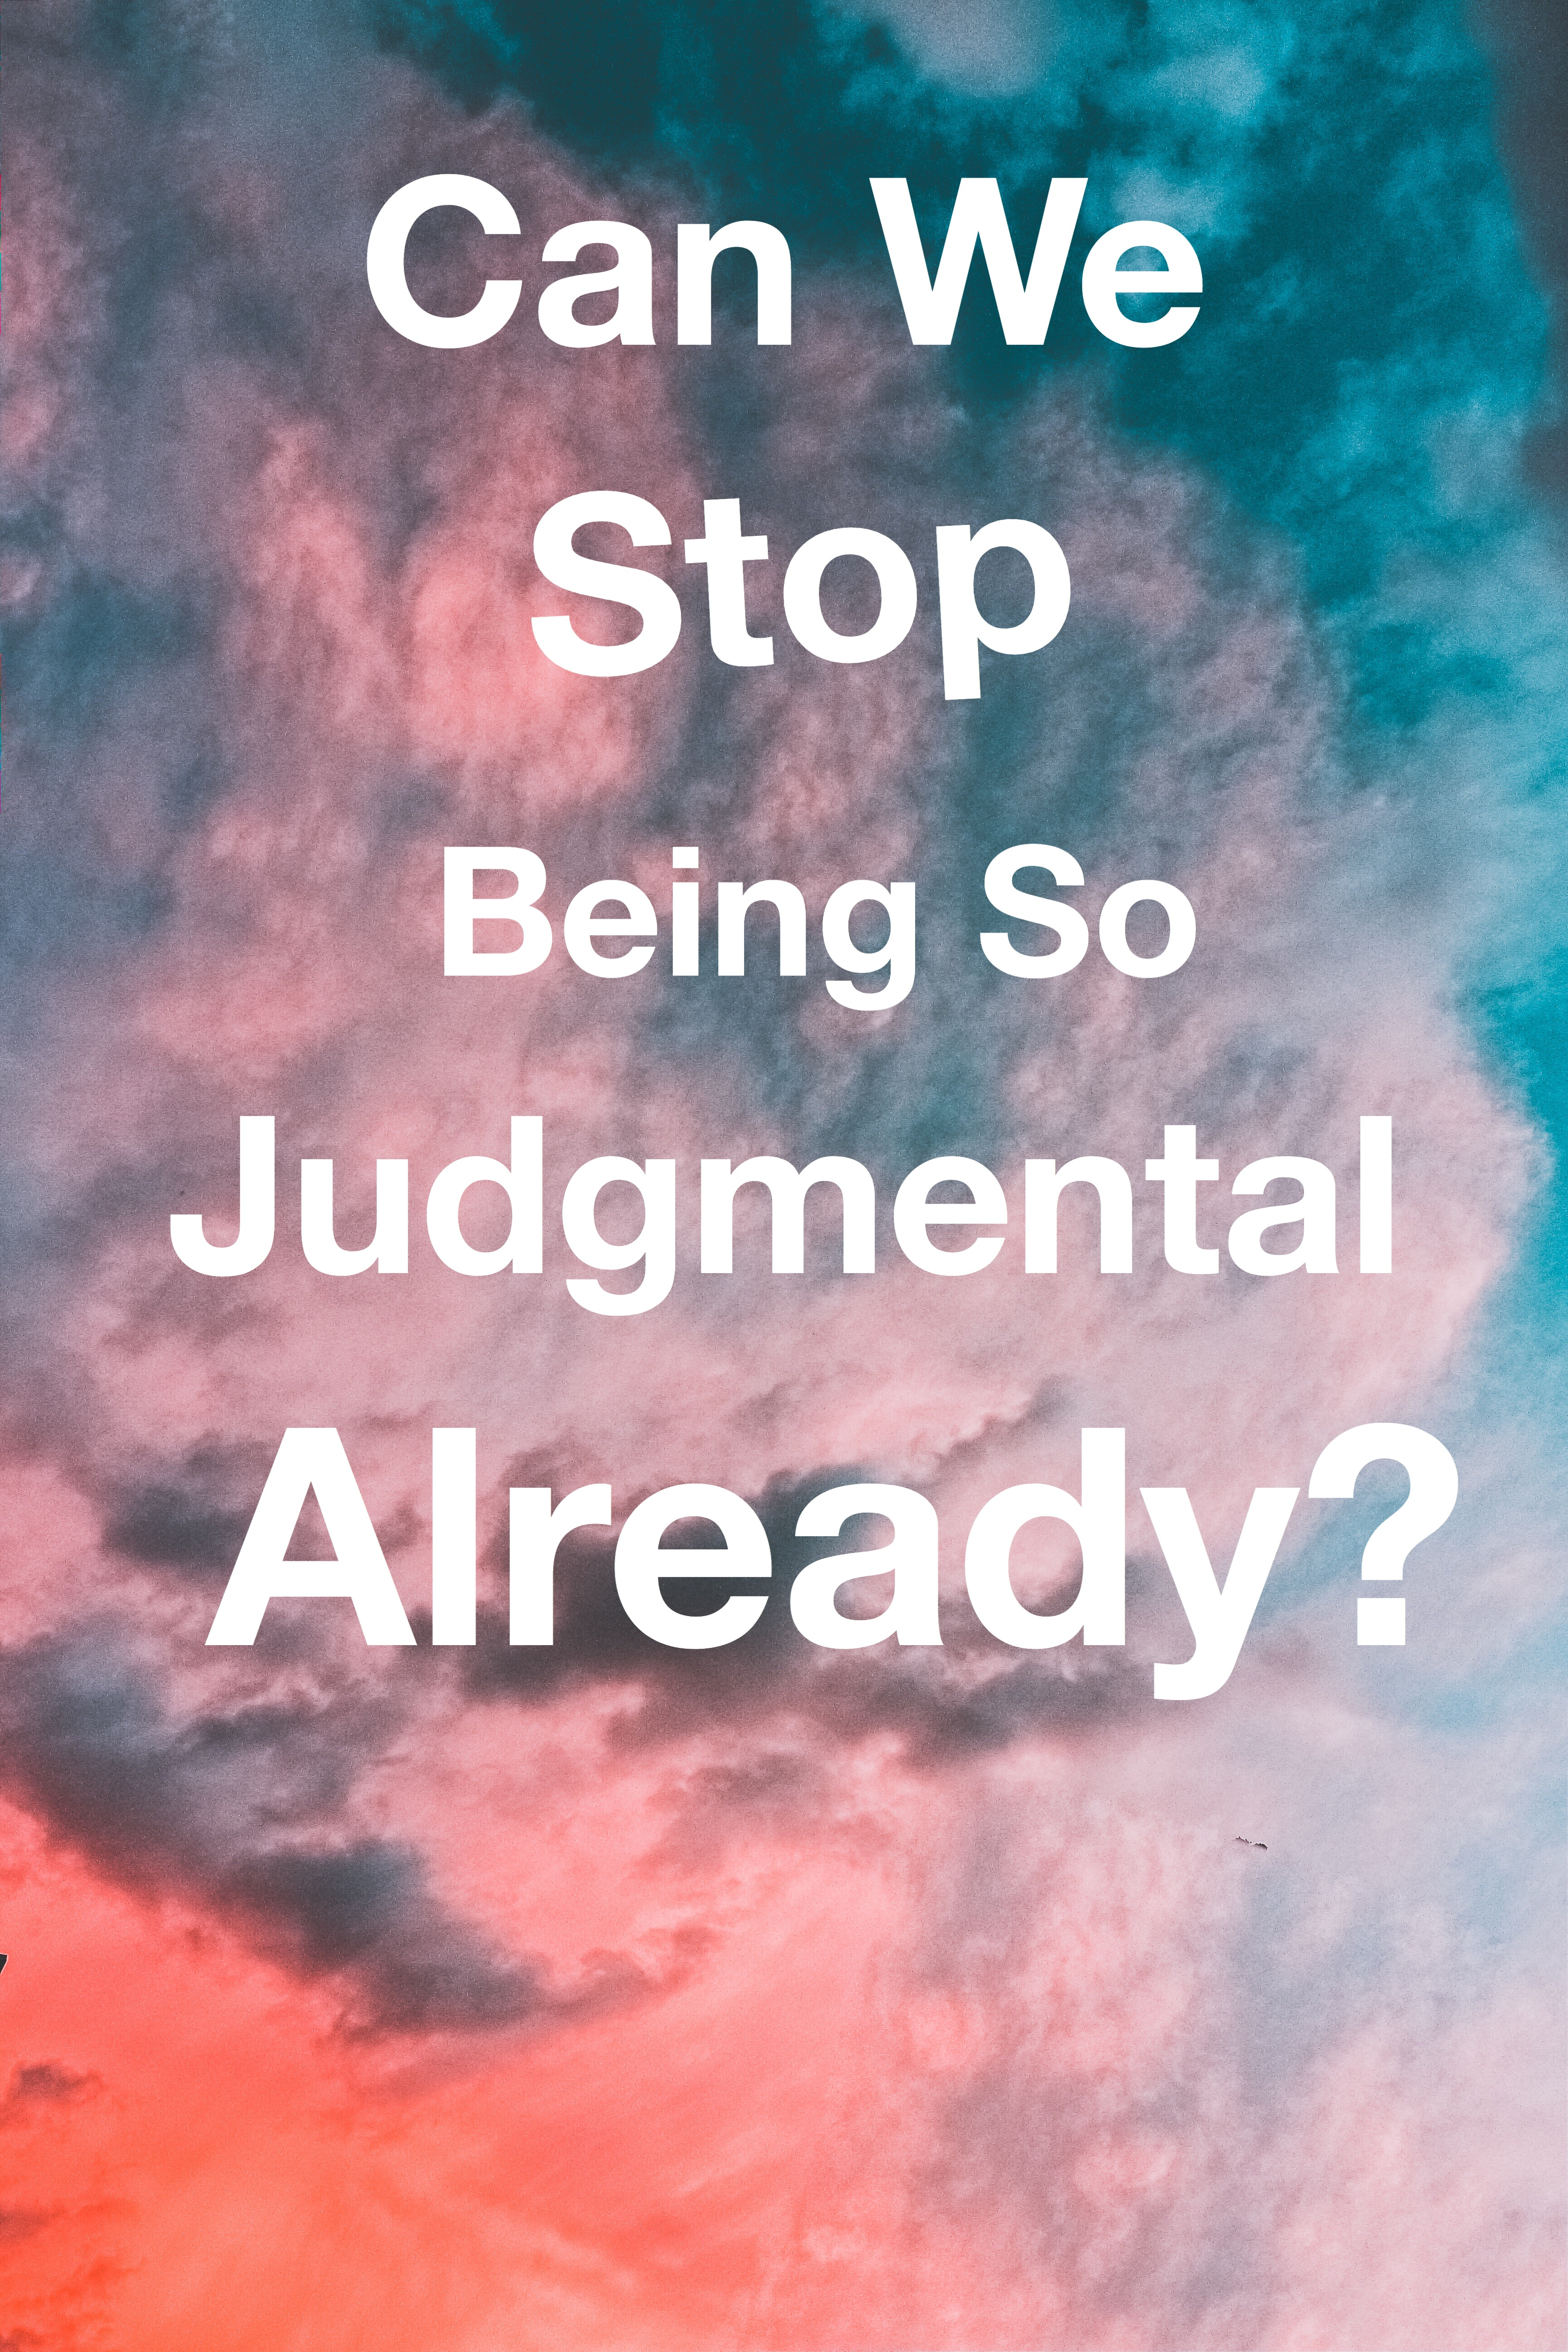 Can We Stop Being So Judgmental Already? (Sky Pin)